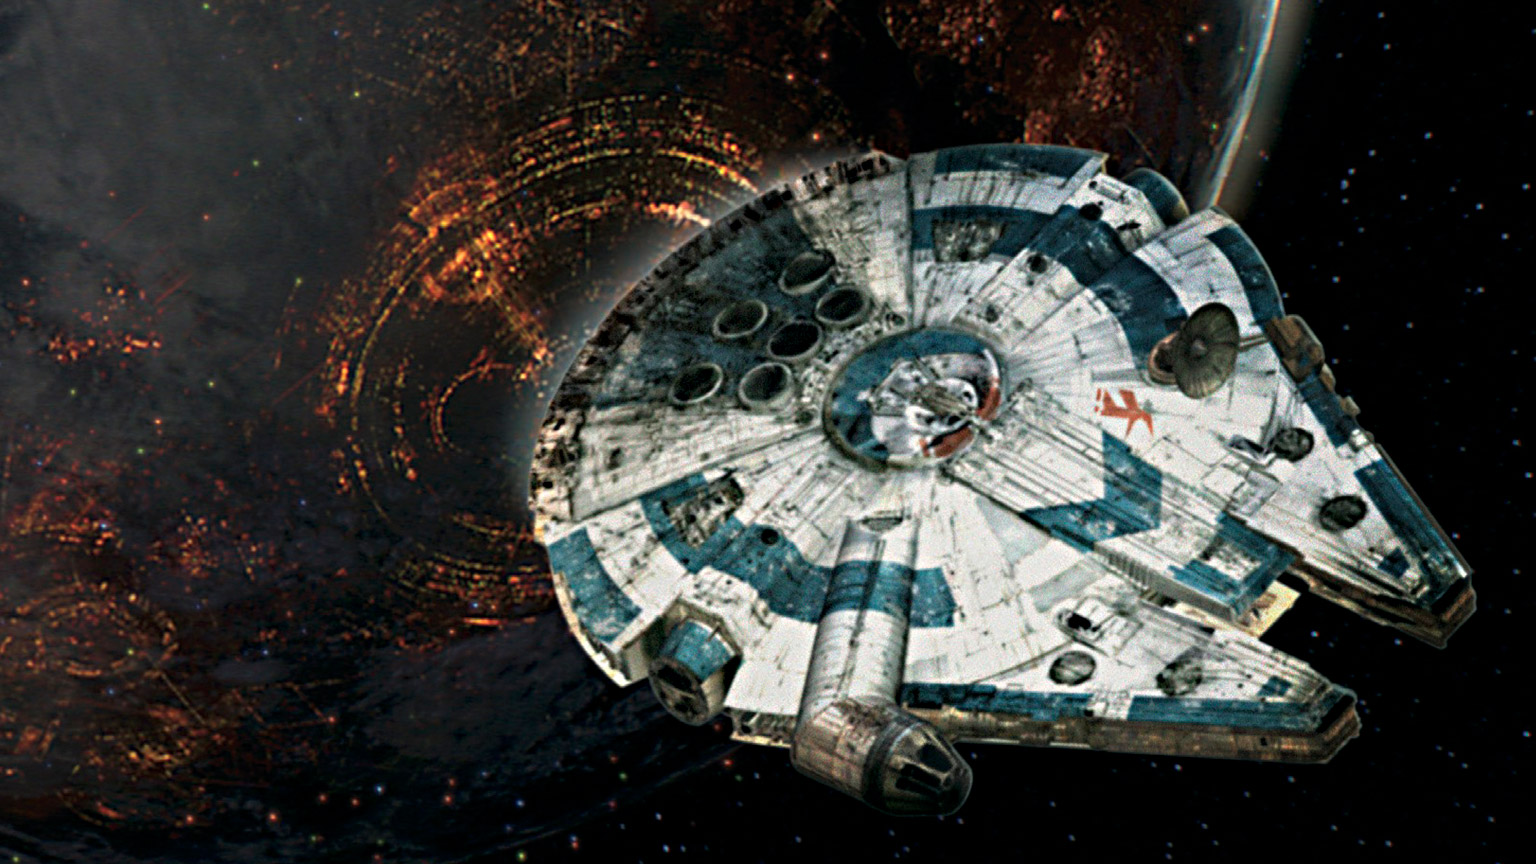 Everything You Need to Know to Fly theMillennium Falcon